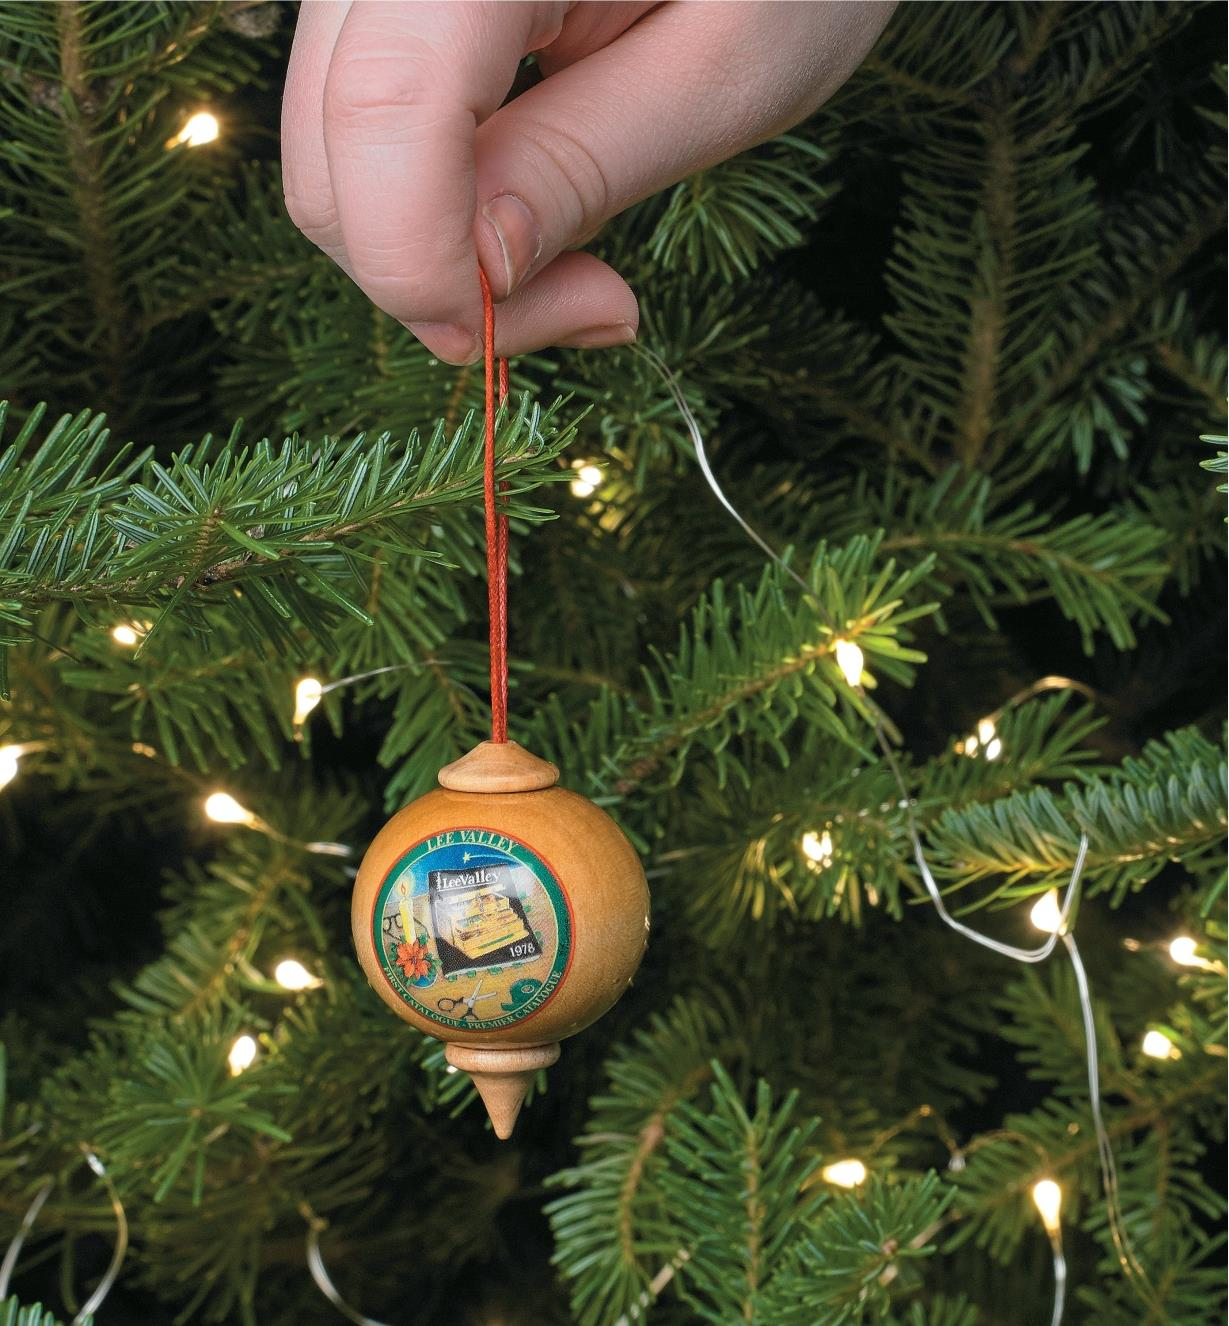 Hanging a First Product Ornament on a Christmas tree